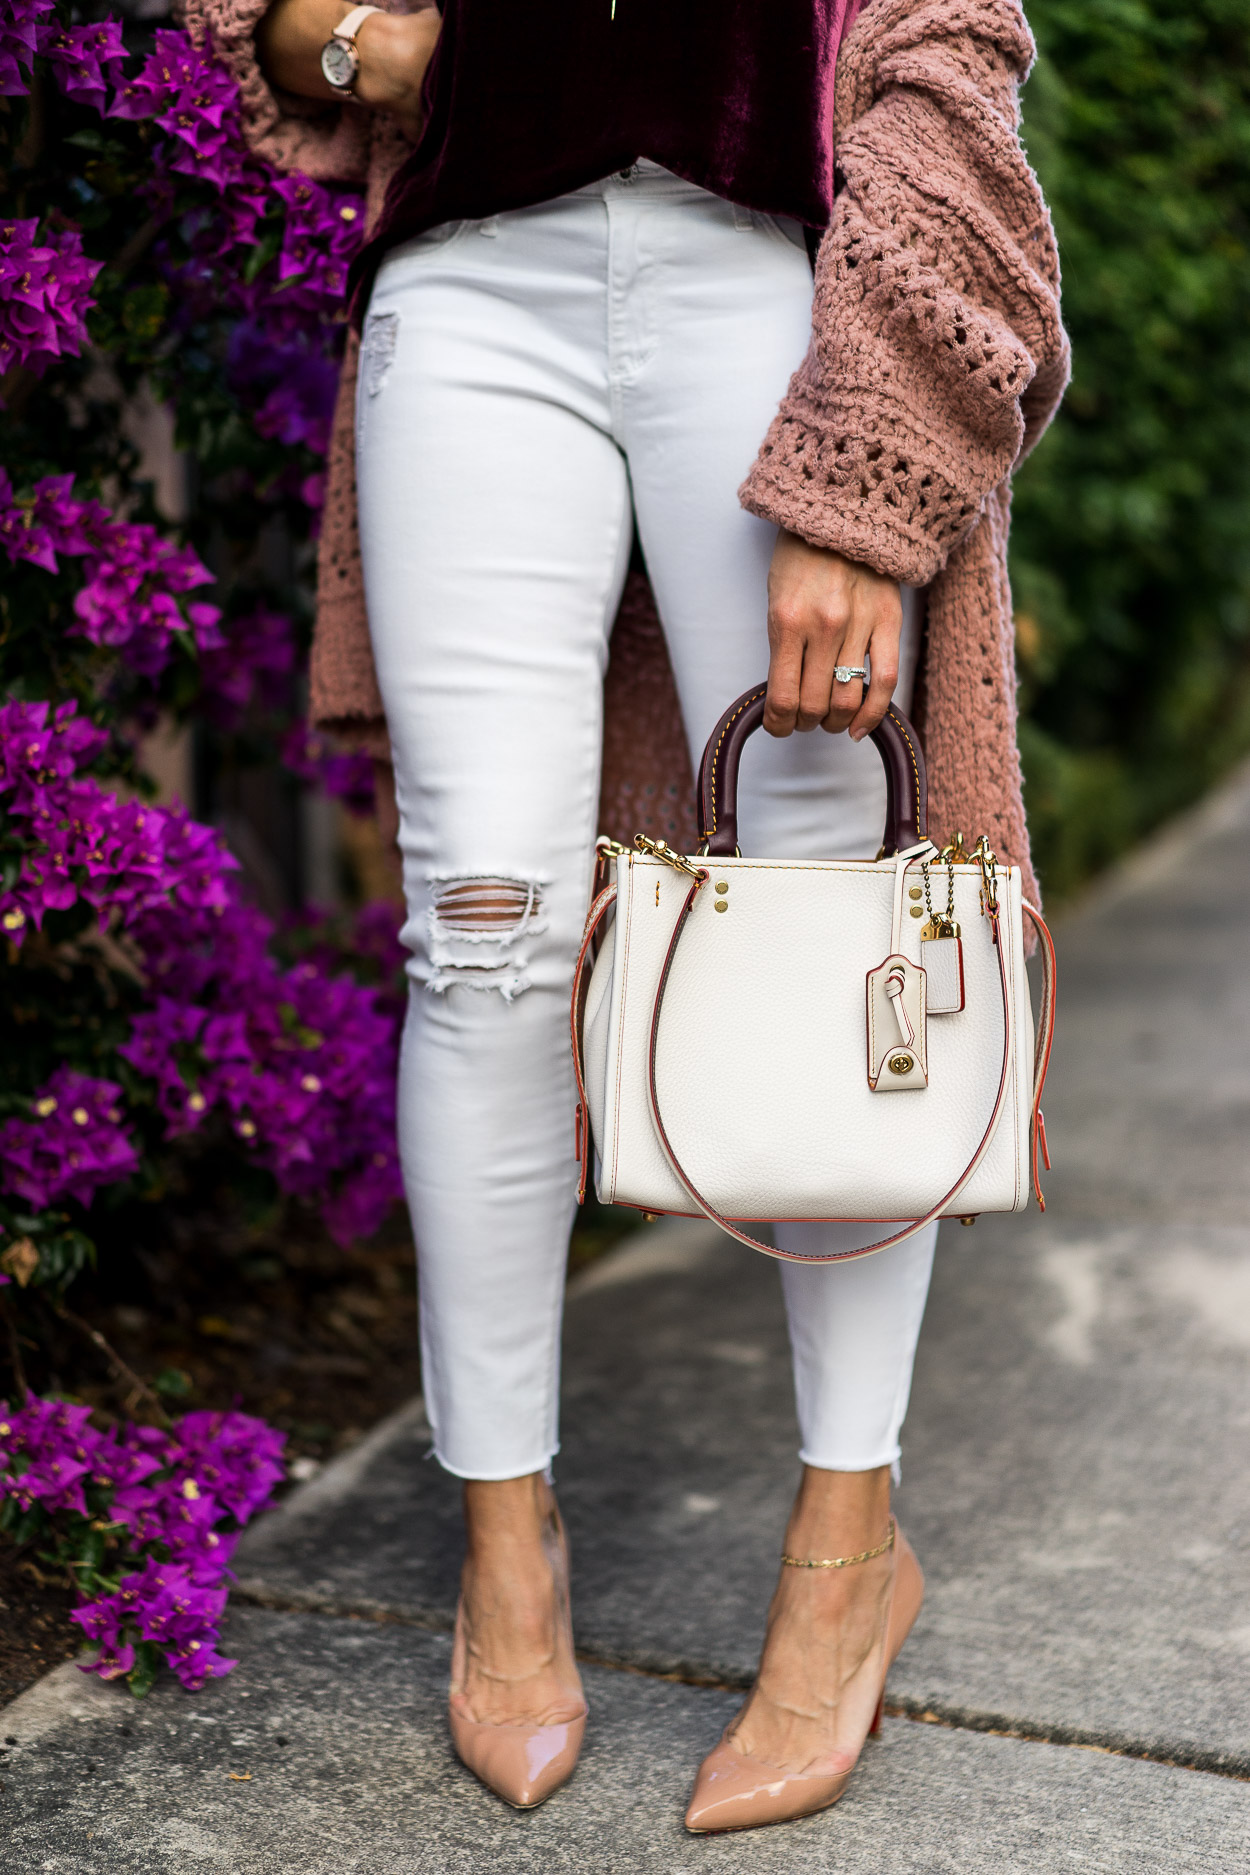 Coach Rogue pebbled leather bag worn with white distressed AG legging jeans by Amanda of A Glam Lifestyle blog